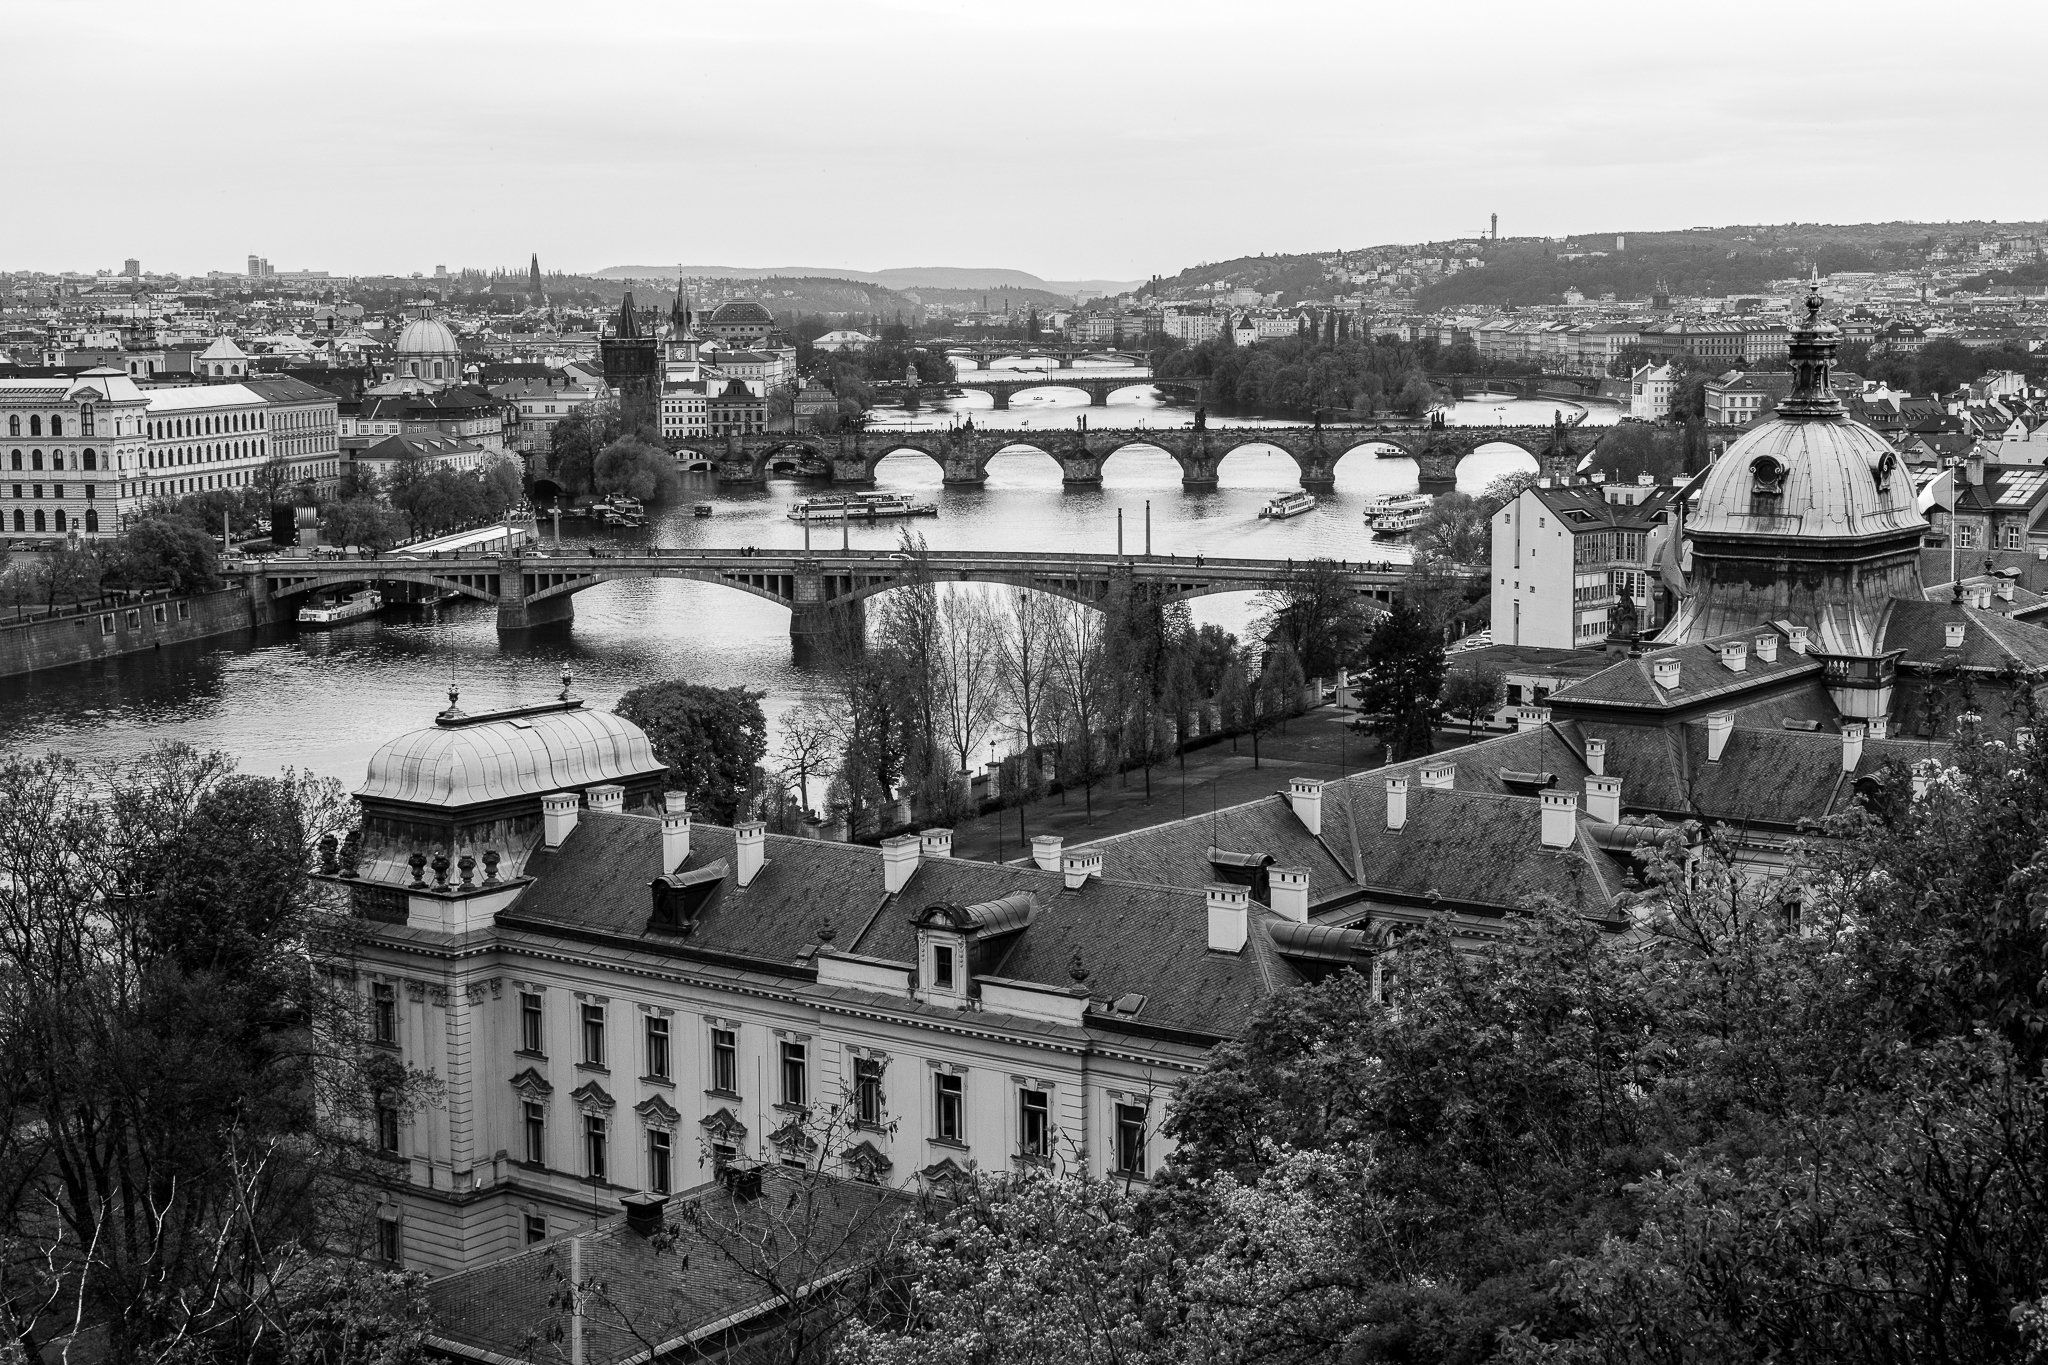 Capital of the Czech Republic and the Bohemian Region, Prague is one of the most visited places in Europe. Also known as The City of the Hundred Towers or The Golden City, with the historic center of this city since 1992 being a World Heritage Site.